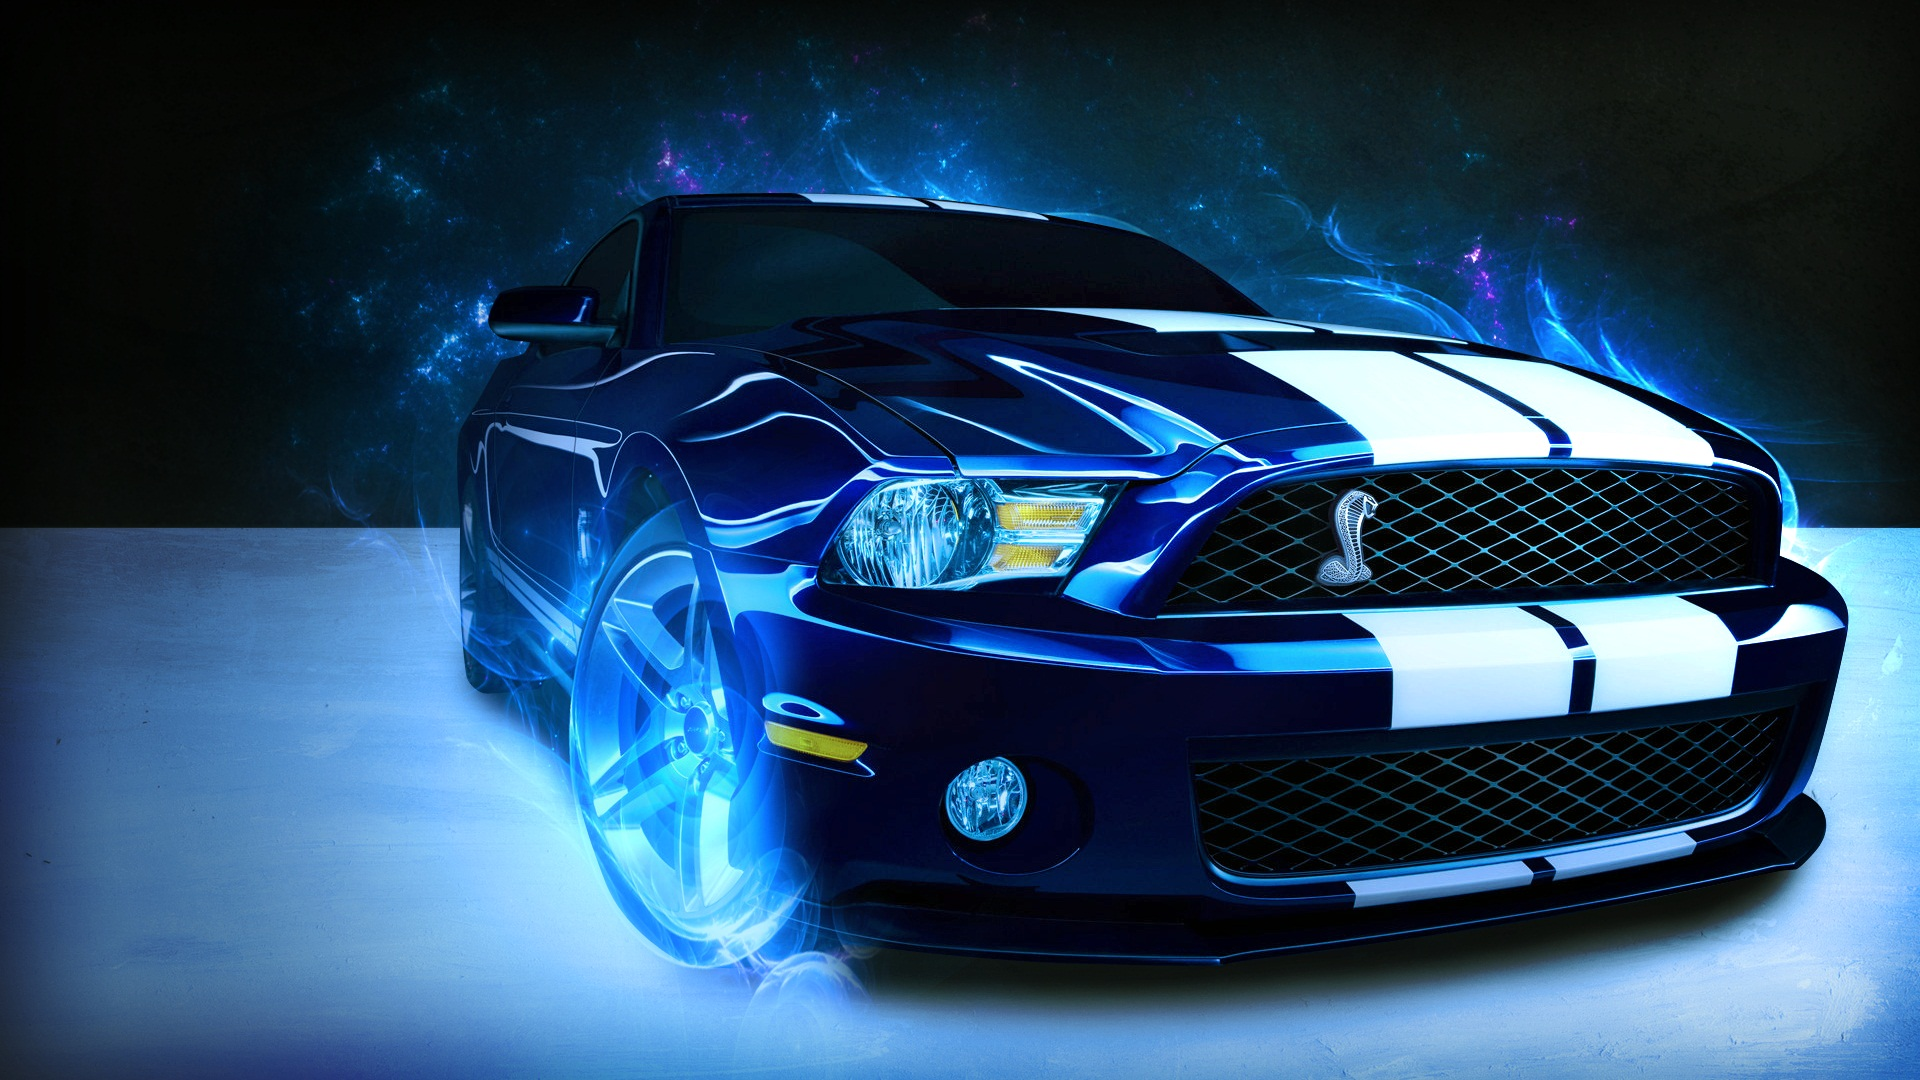 Mustang Wallpaper Hd wallpaper   1115808 1920x1080